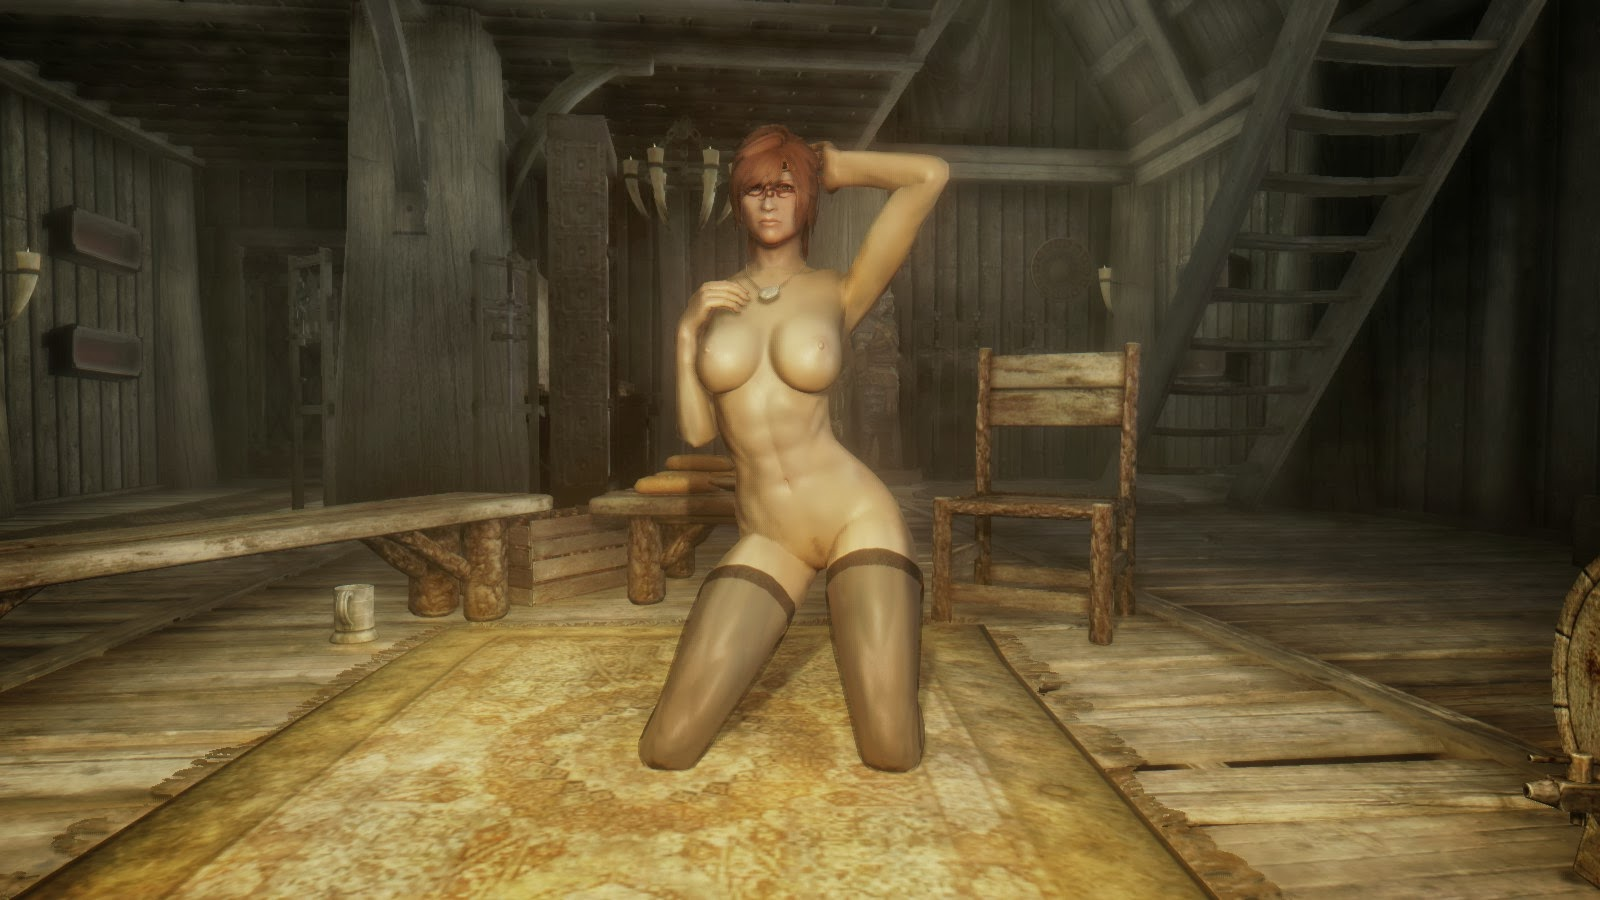 Elder scrolls 4 adult patch nude tube